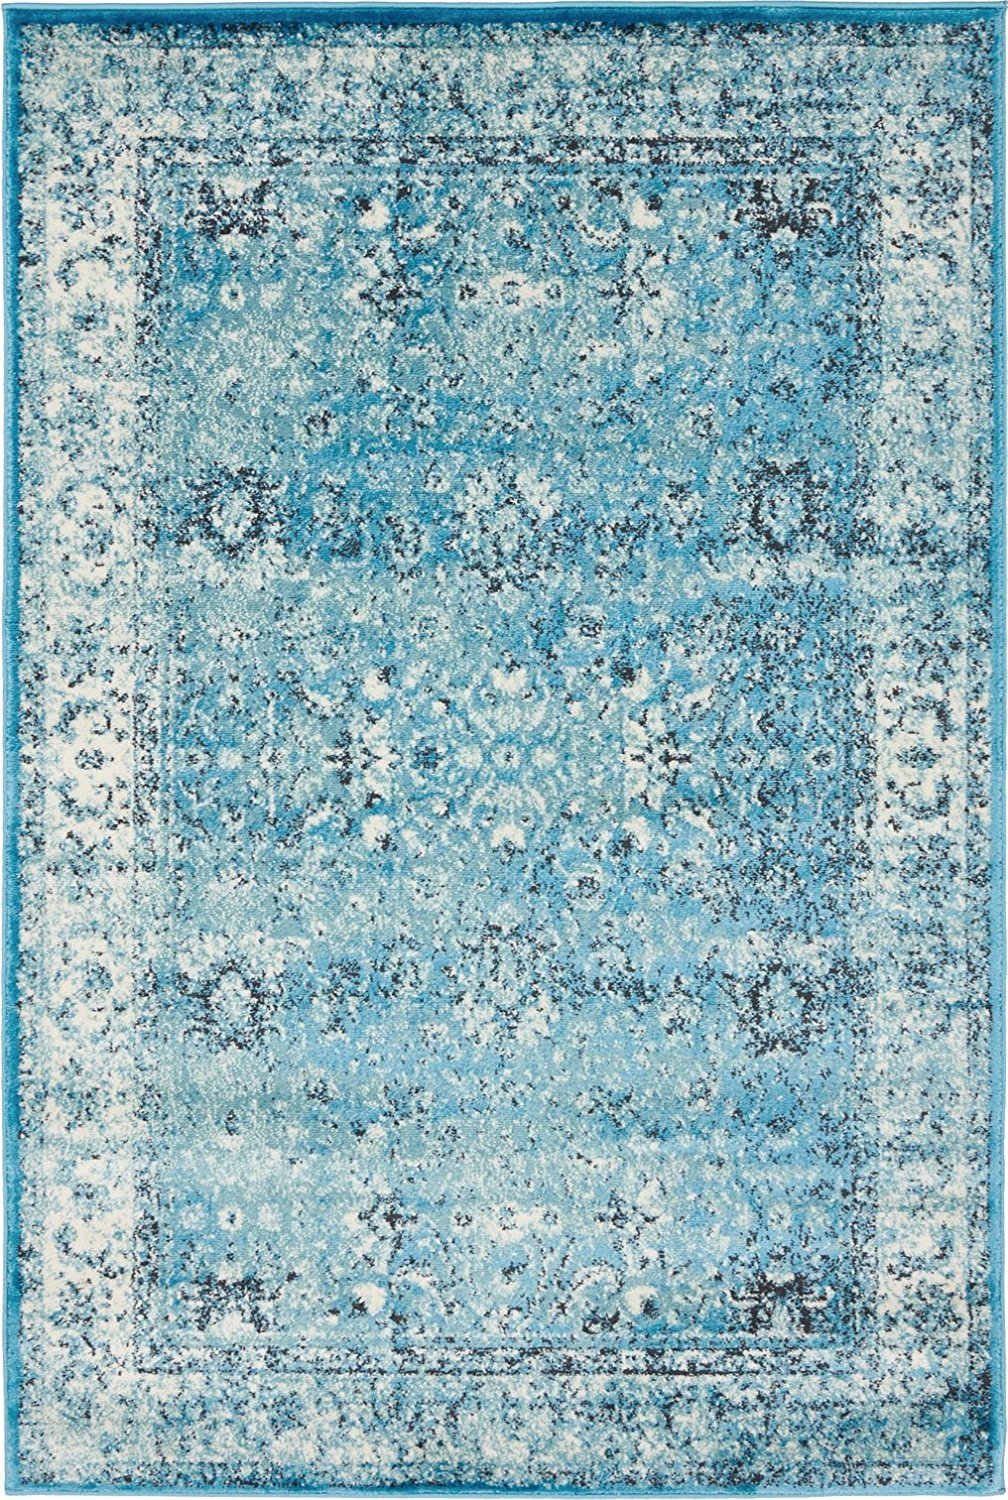 Buy Luxury Modern Vintage Inspired Overdyed Area Rugs Blue 4